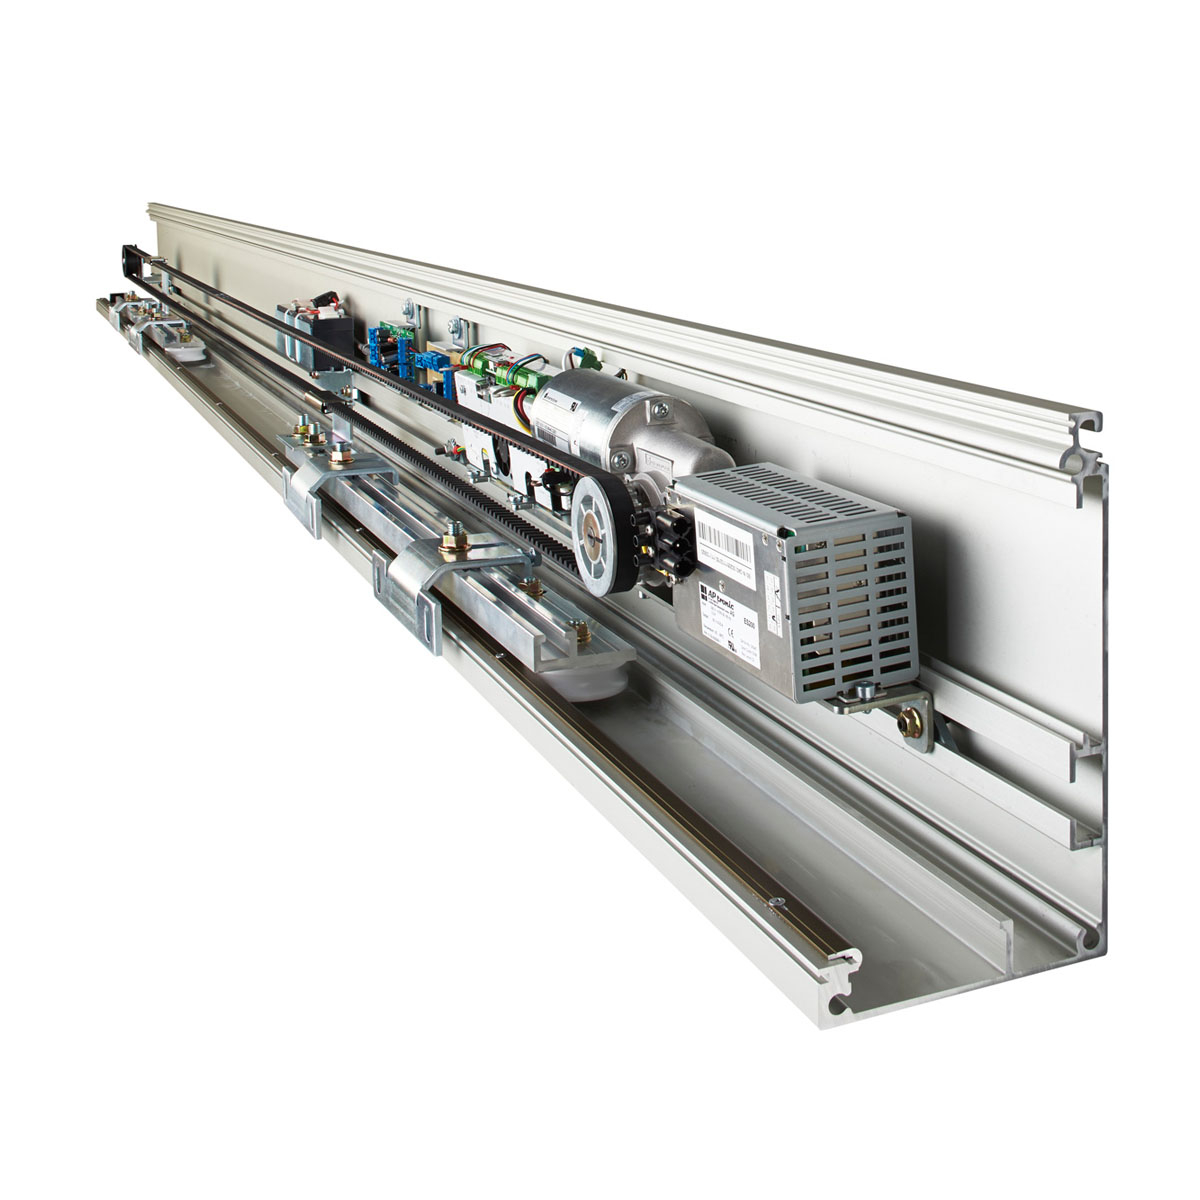 Dorma Hd 200 Automatic Sliding Door Operator